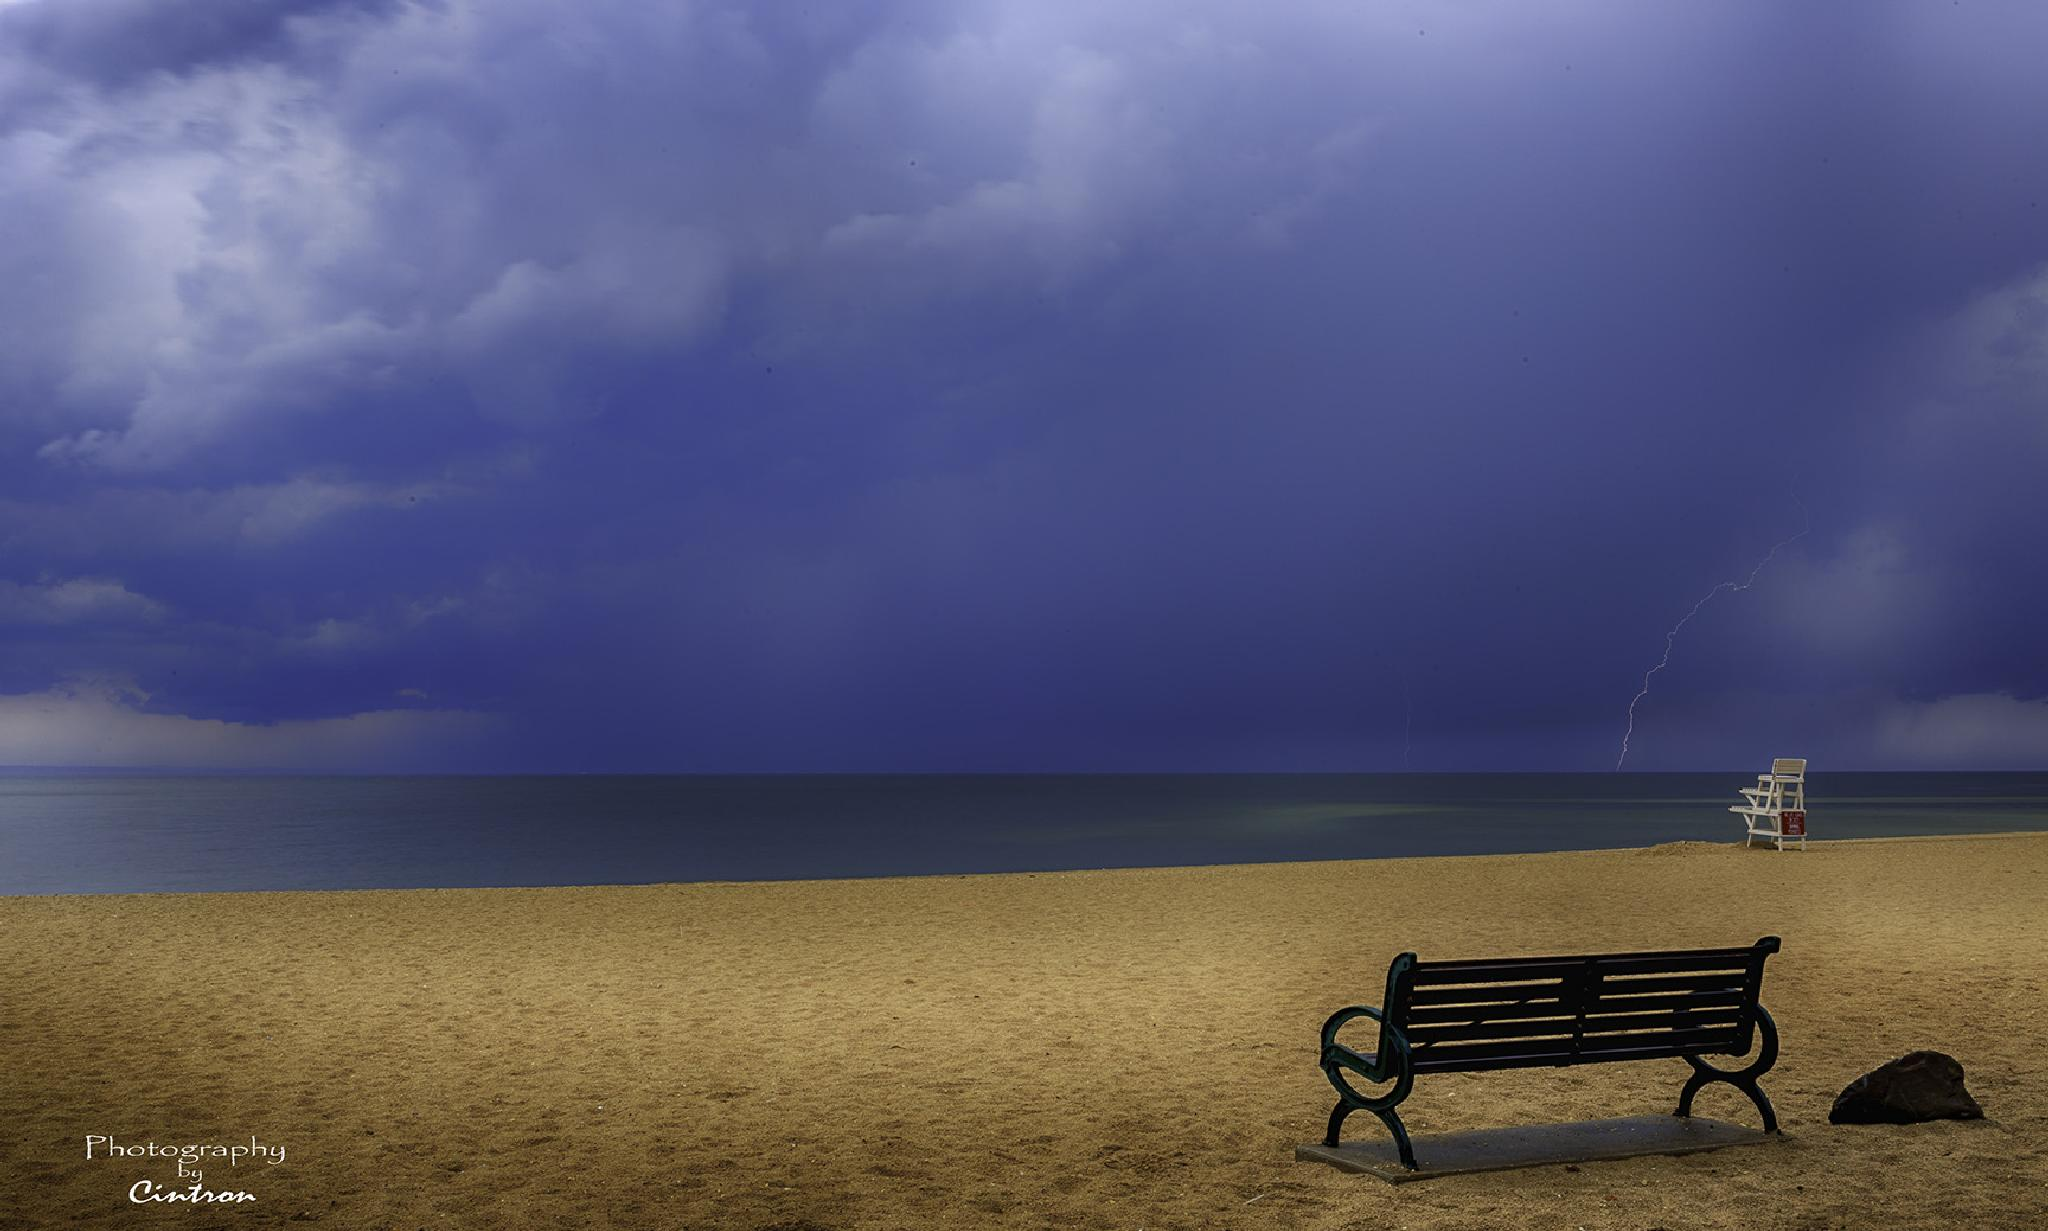 Lightning at Crab Meadow Beach #2 by Photographybycintron